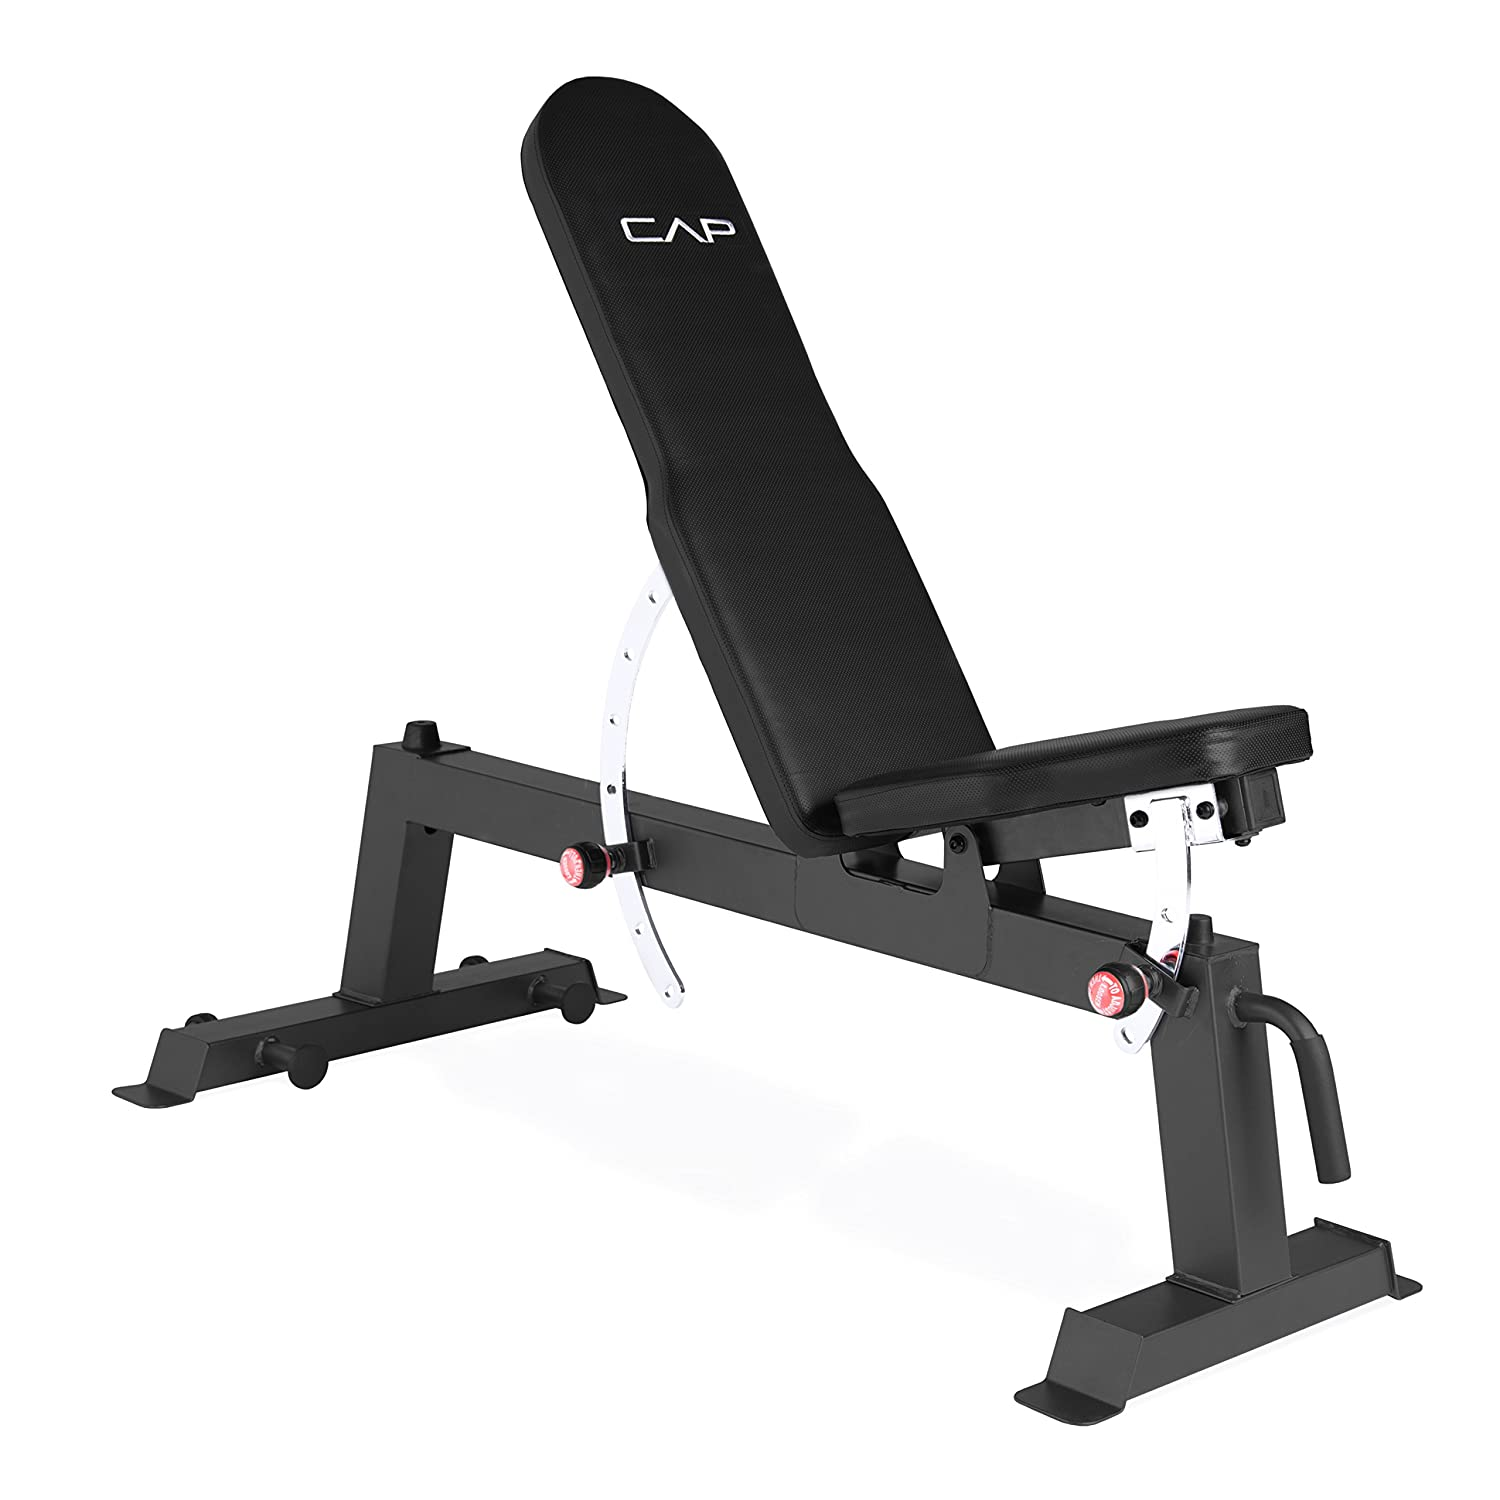 p benches training co fit bench sports weights ltd asp with v weight c uk strength beny folding